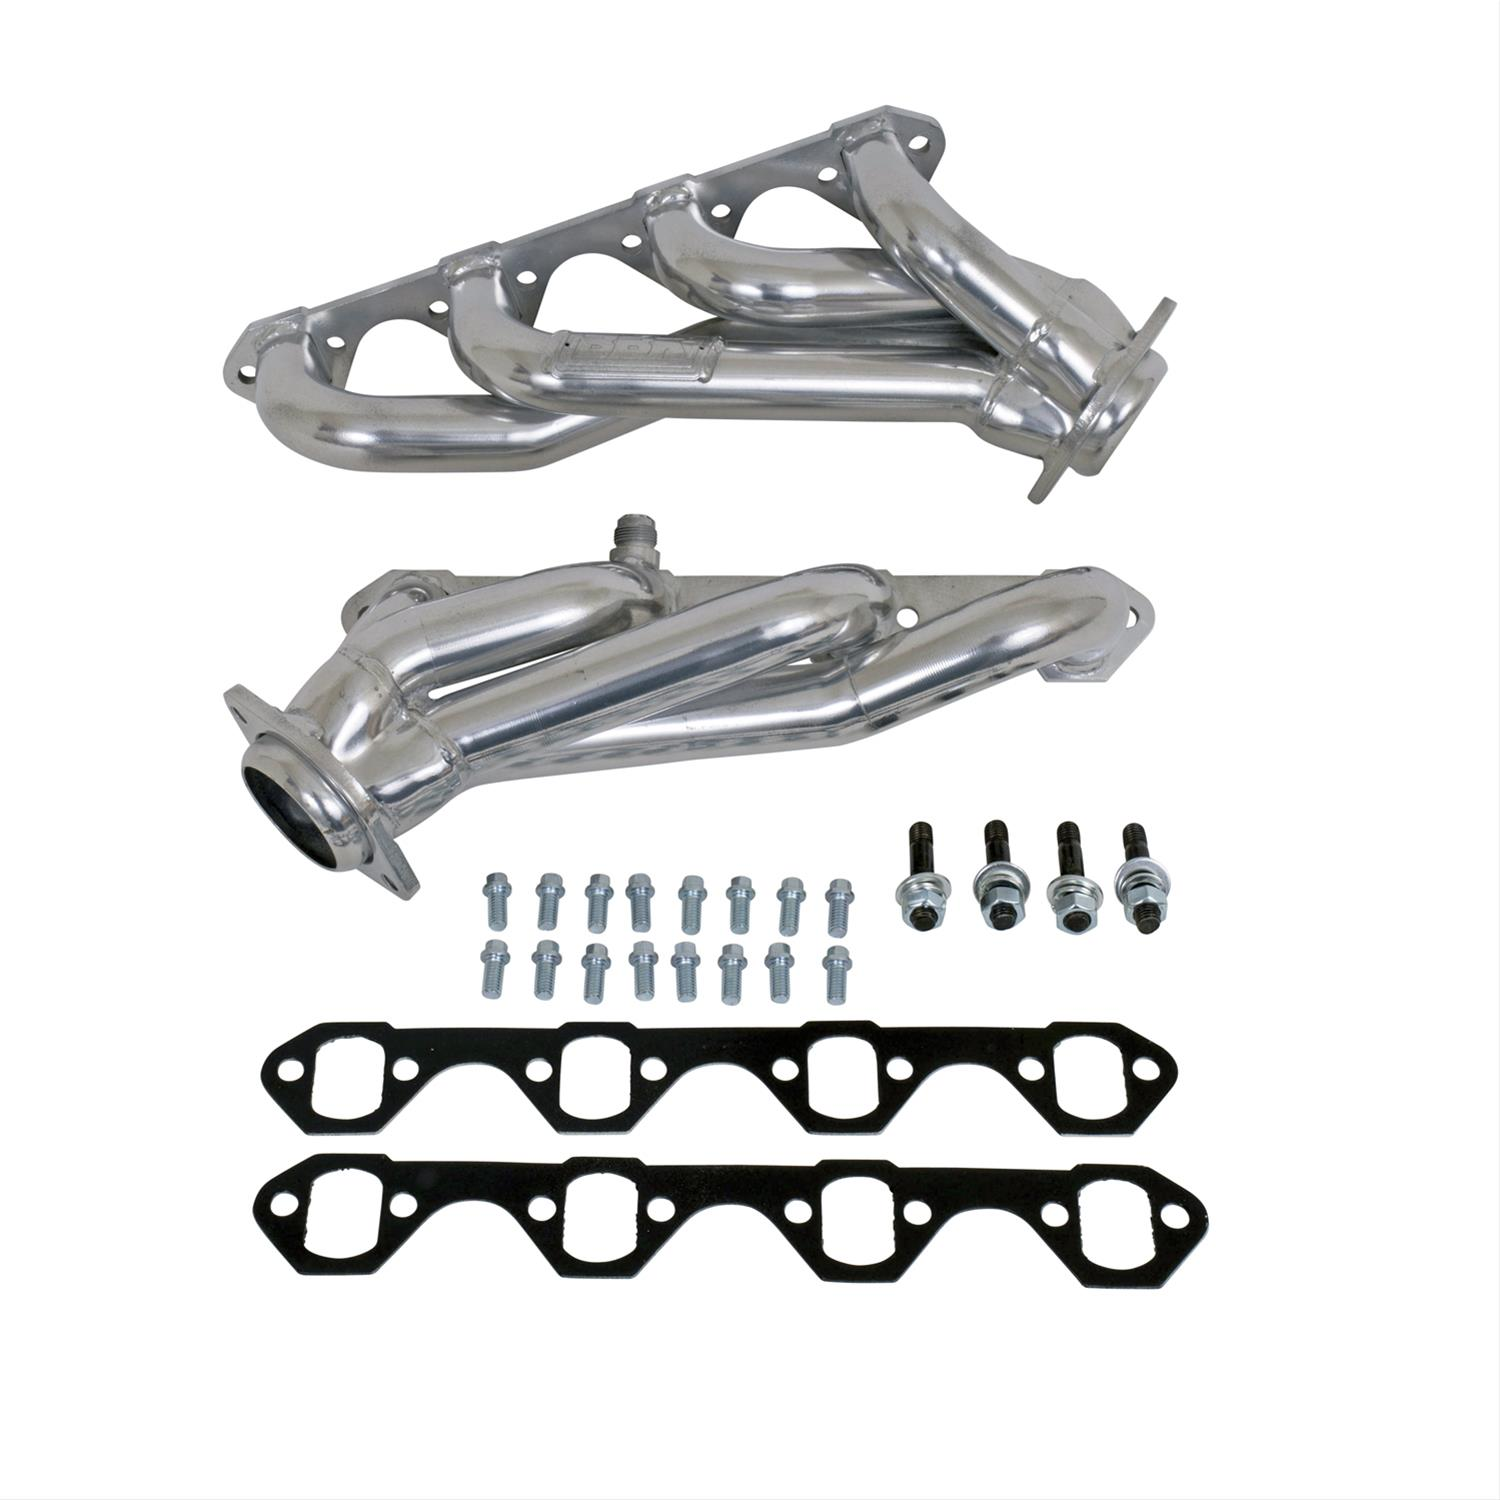 BBK Performance 1525 Shorty Unequal Length Exhaust Header Kit Fits 94-95 Mustang